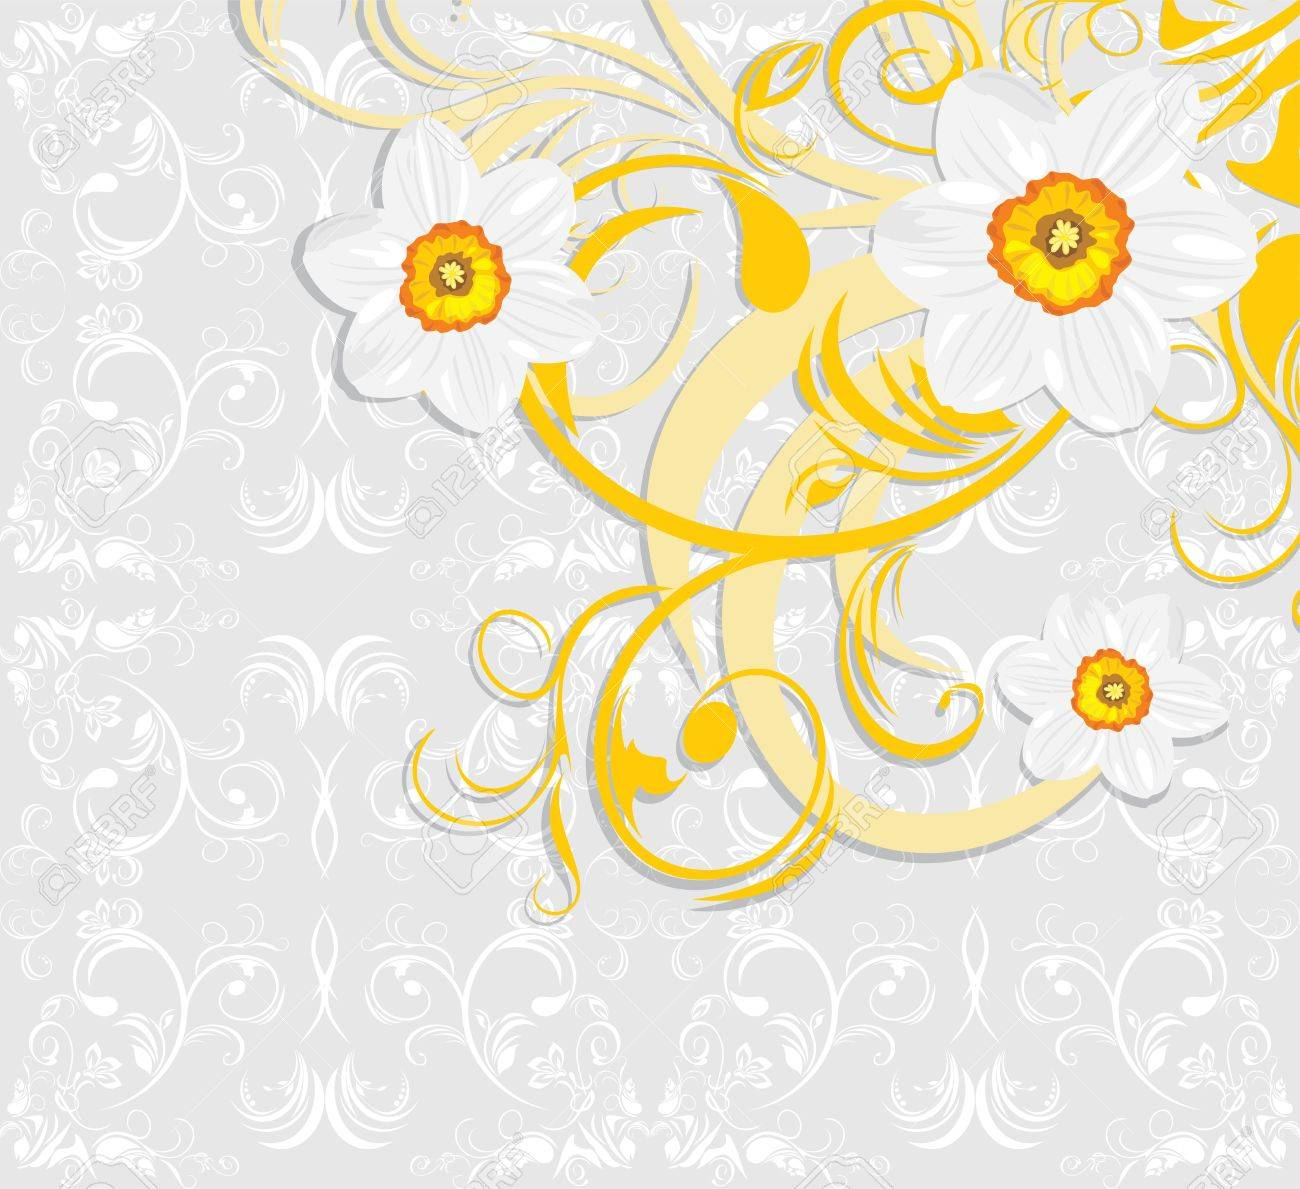 Daffodils on the ornamental background Stock Vector - 13029009